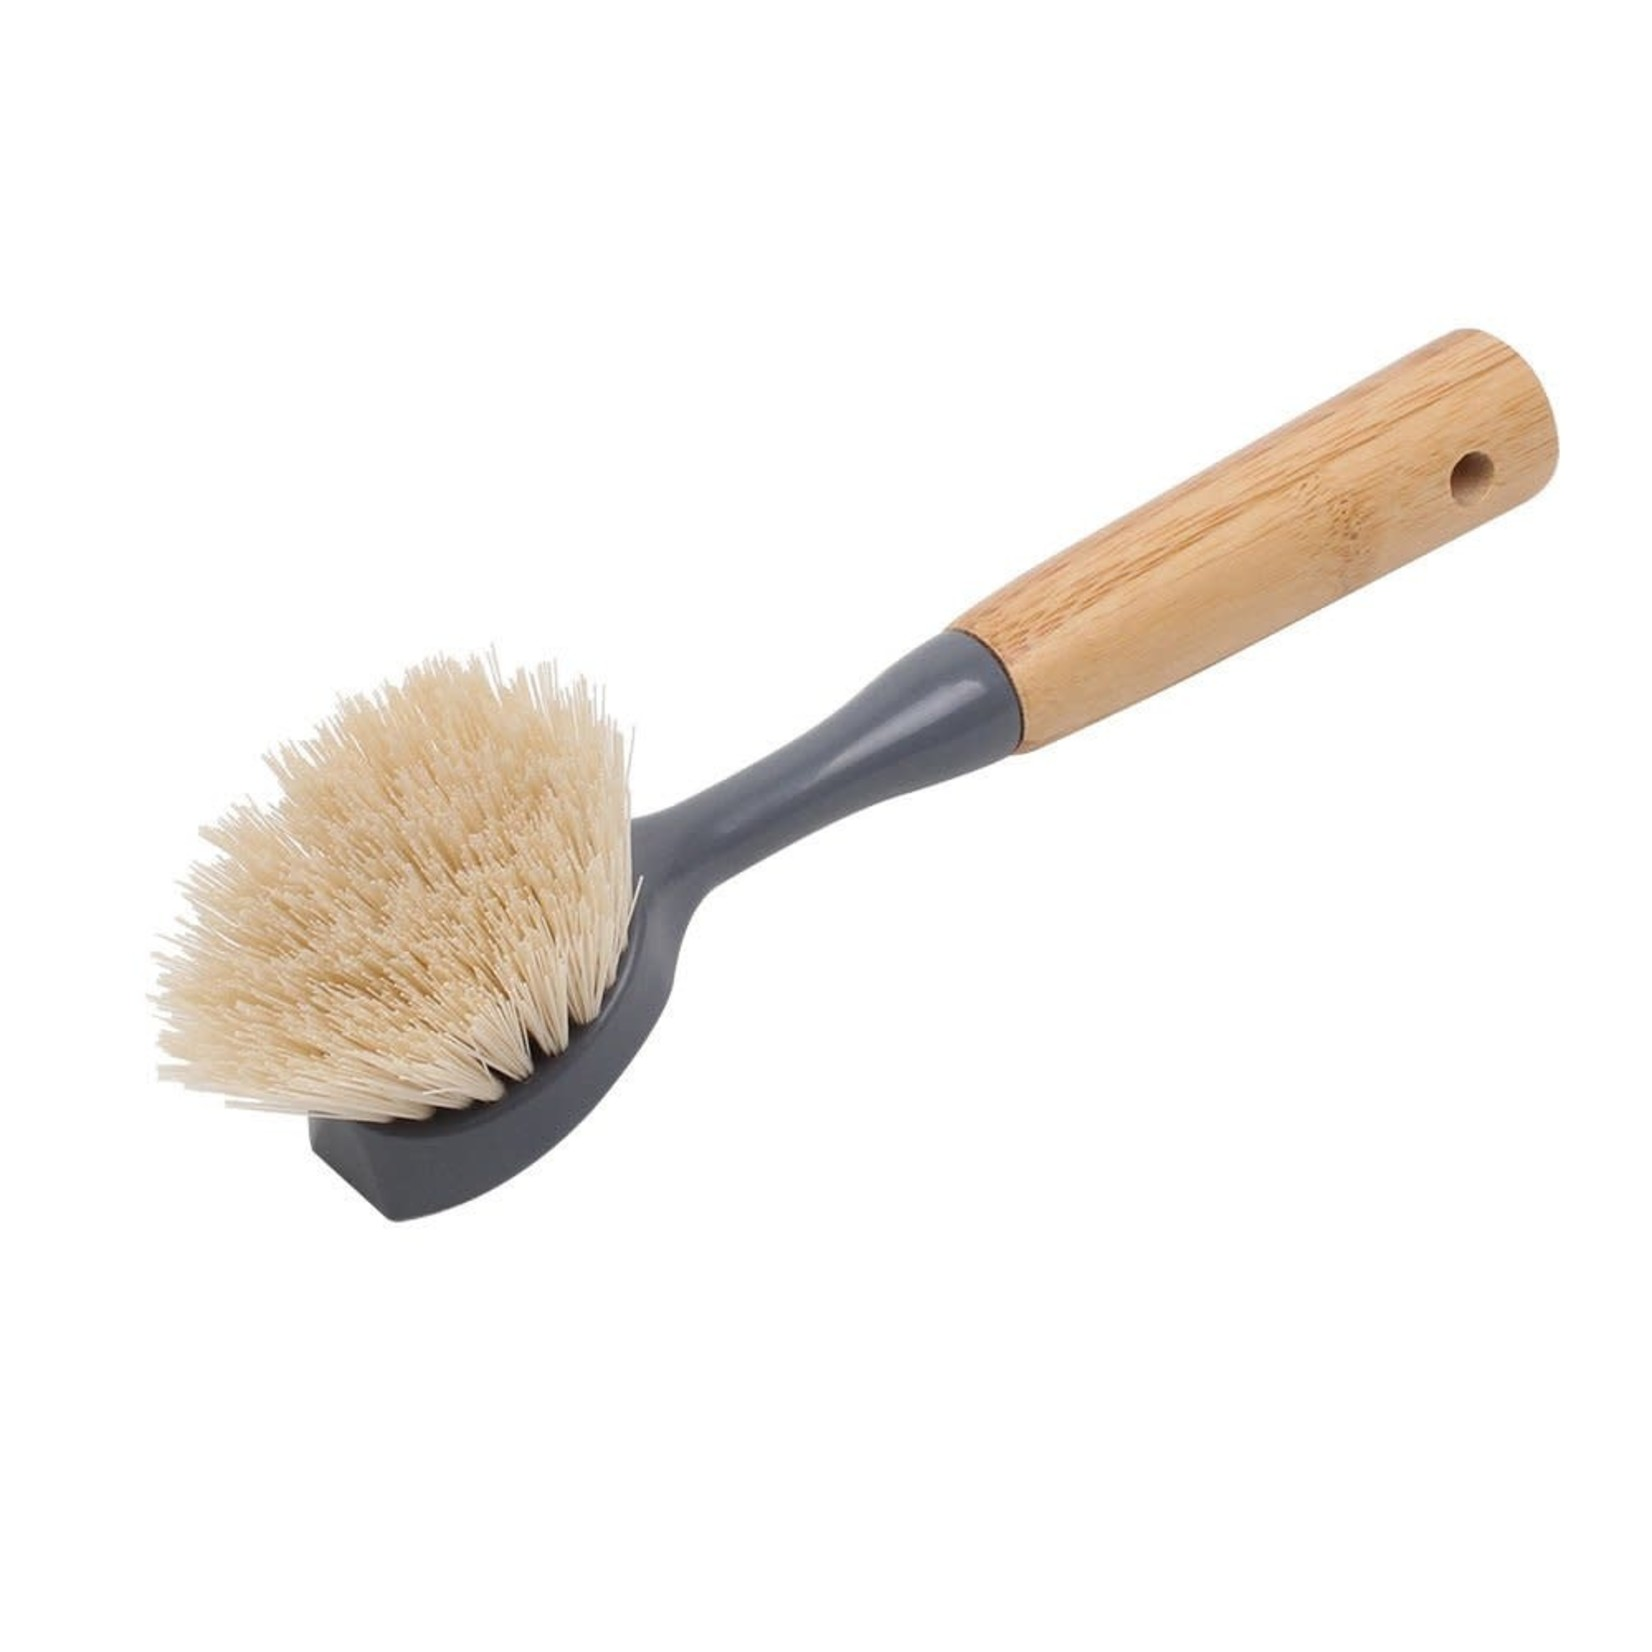 Eco Basics Eco Basics Dish Brush